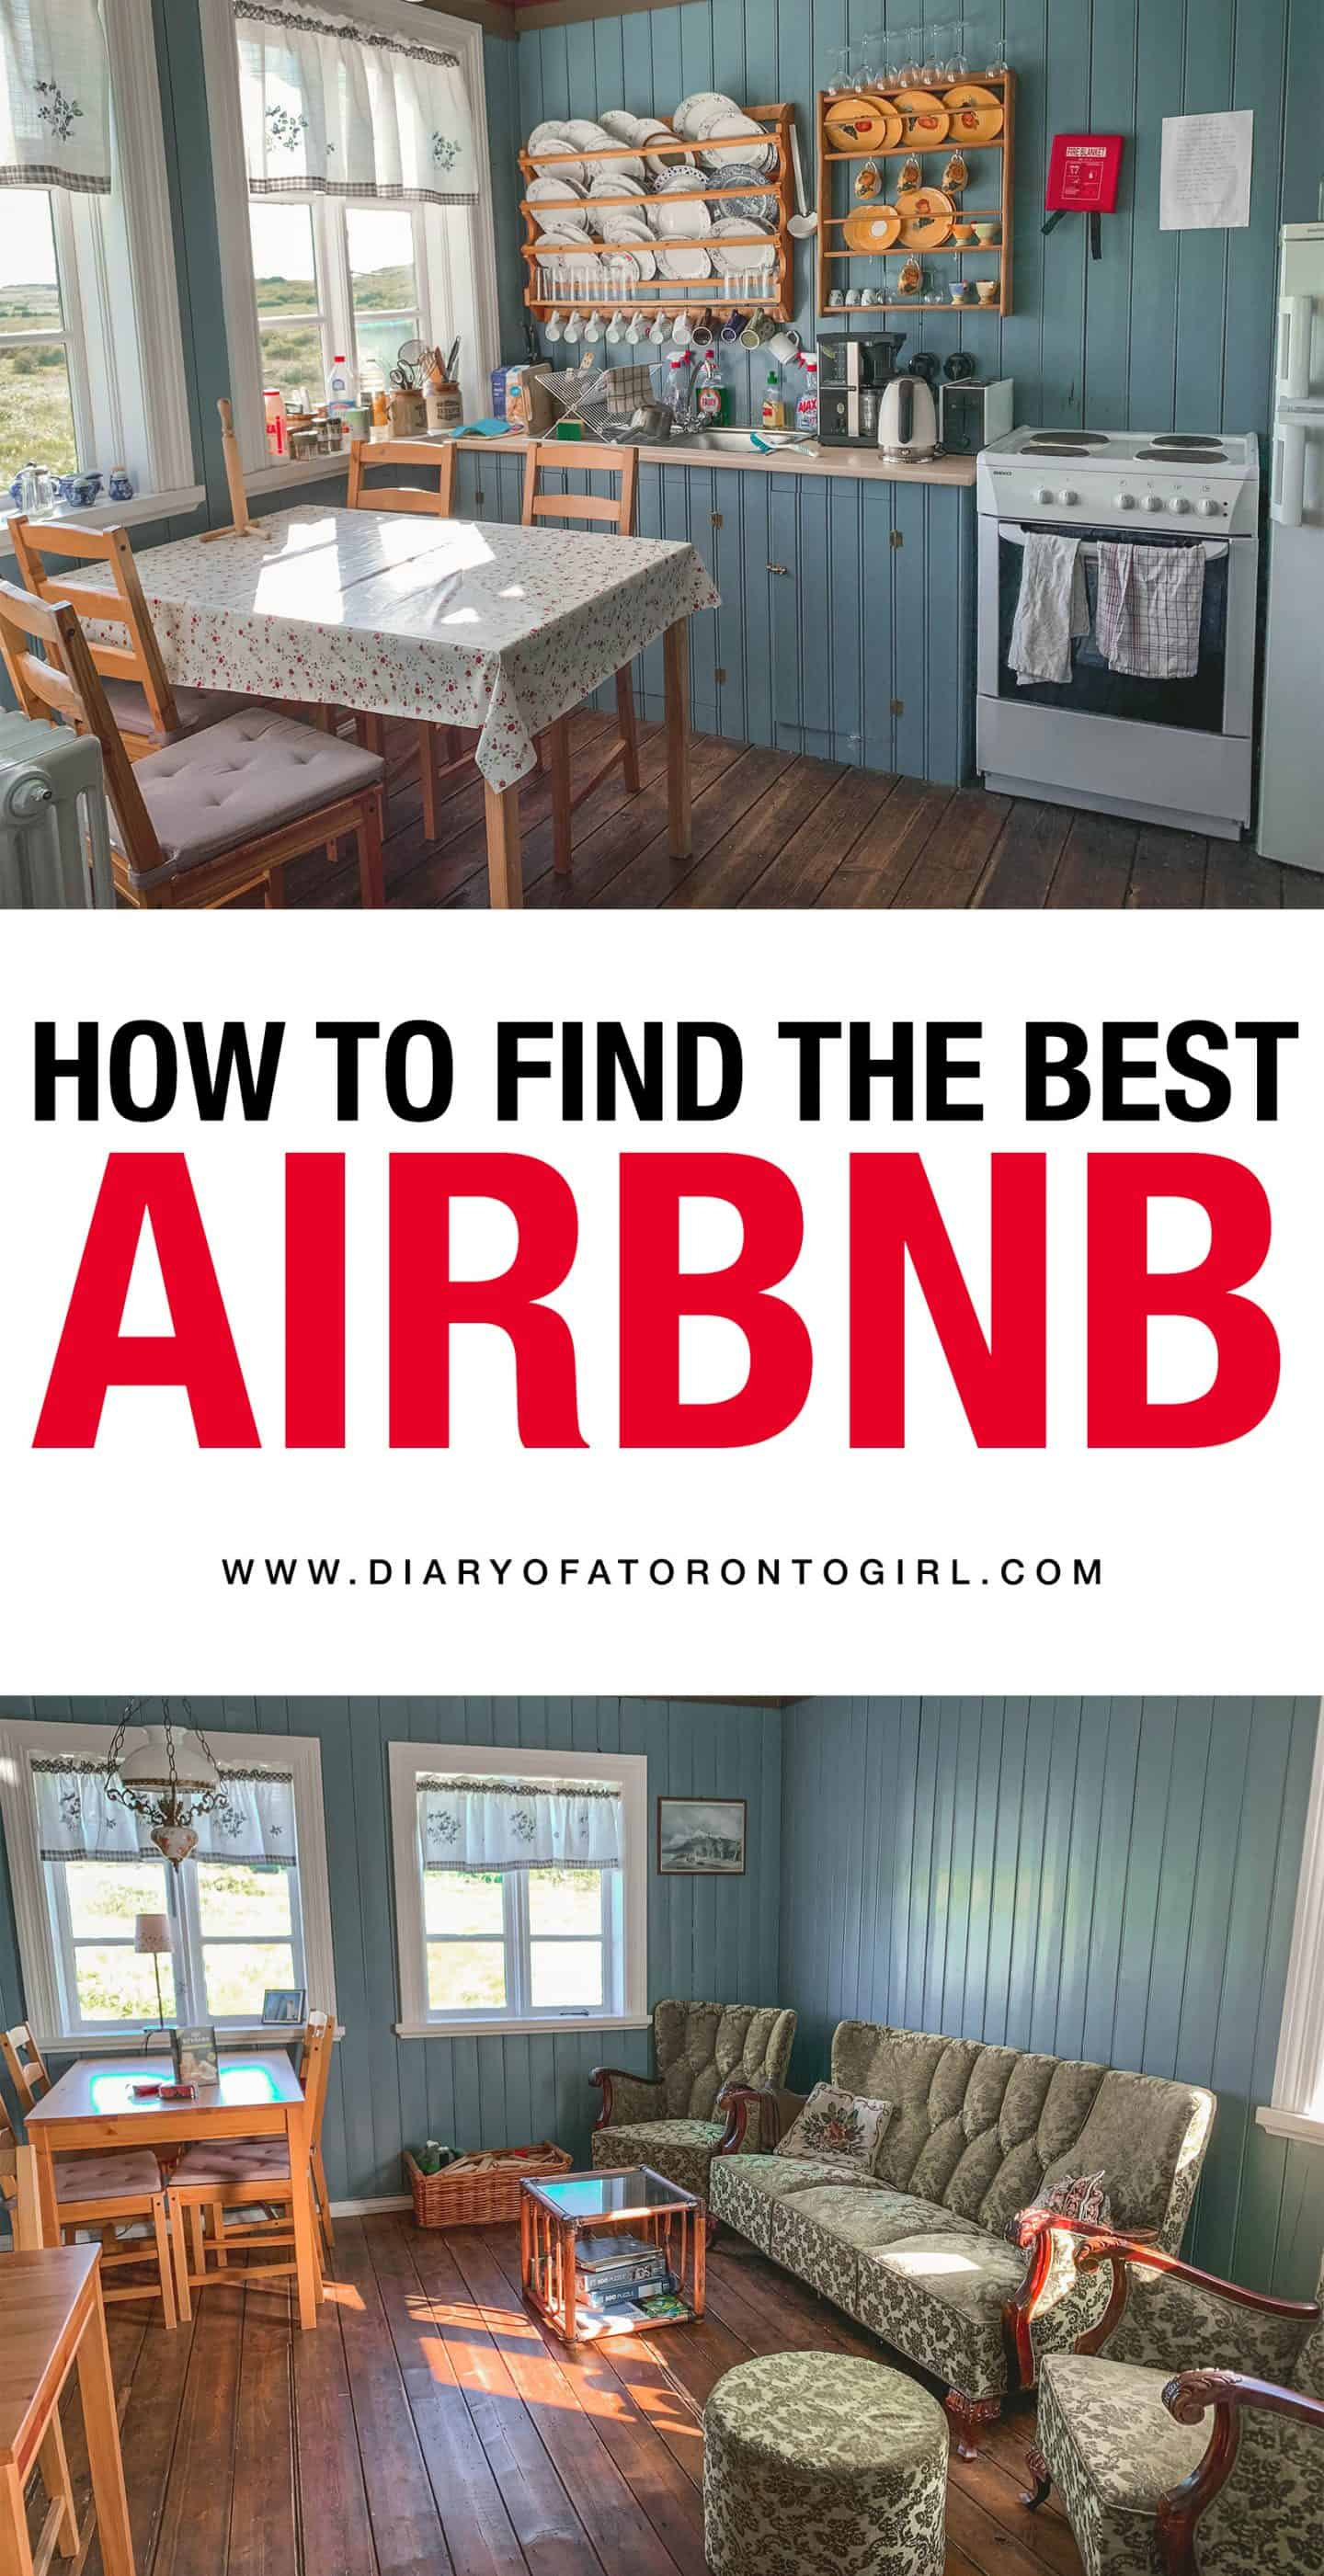 The ultimate guide on how to find the best Airbnb for your vacation, whether you're a budget traveler or just someone looking for a more local experience!